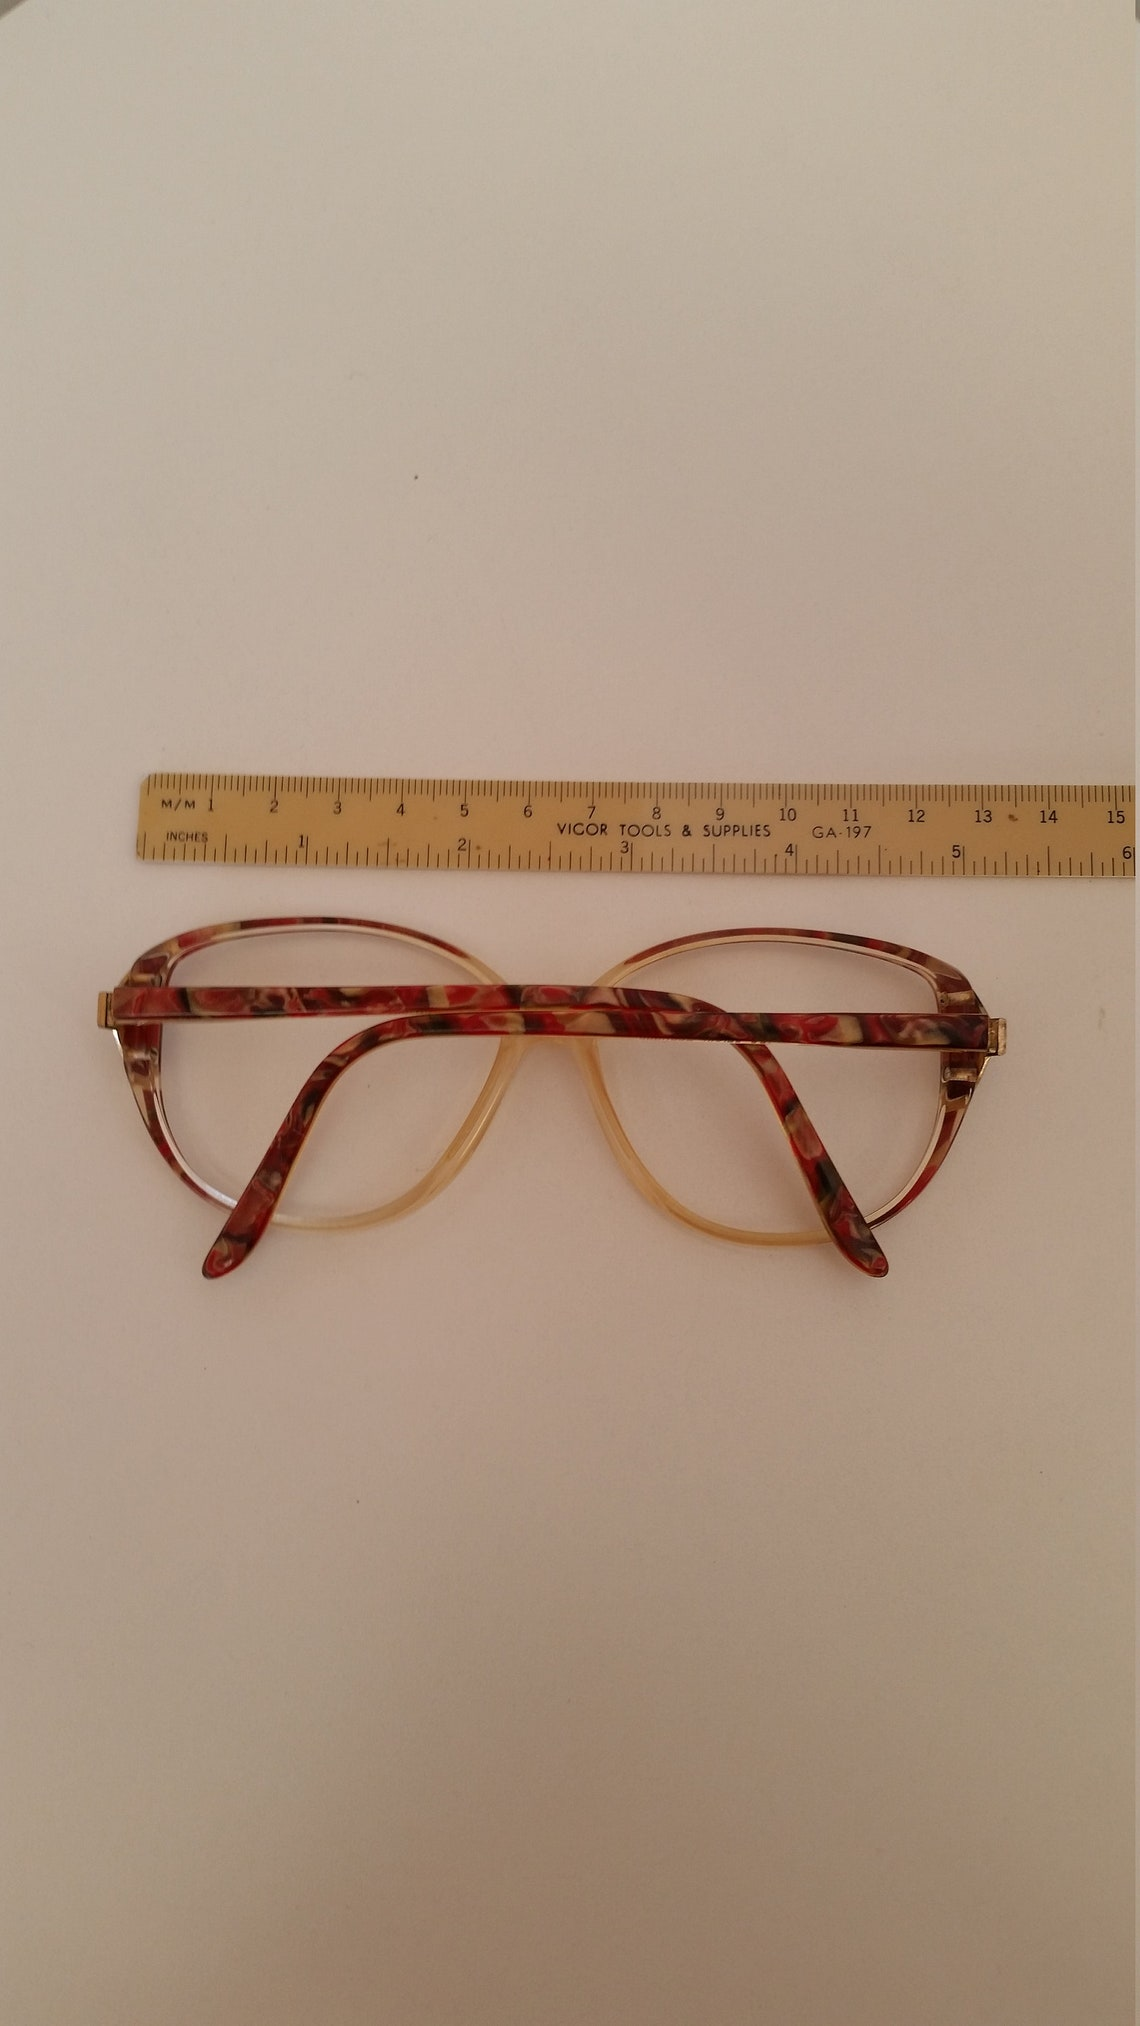 1970s Cardin Boutique Eyeglasses Frame; Red Multi Colored Plastic w/Spring Hinges; Good Vintage Condition; Rx-able; See Description Sizing